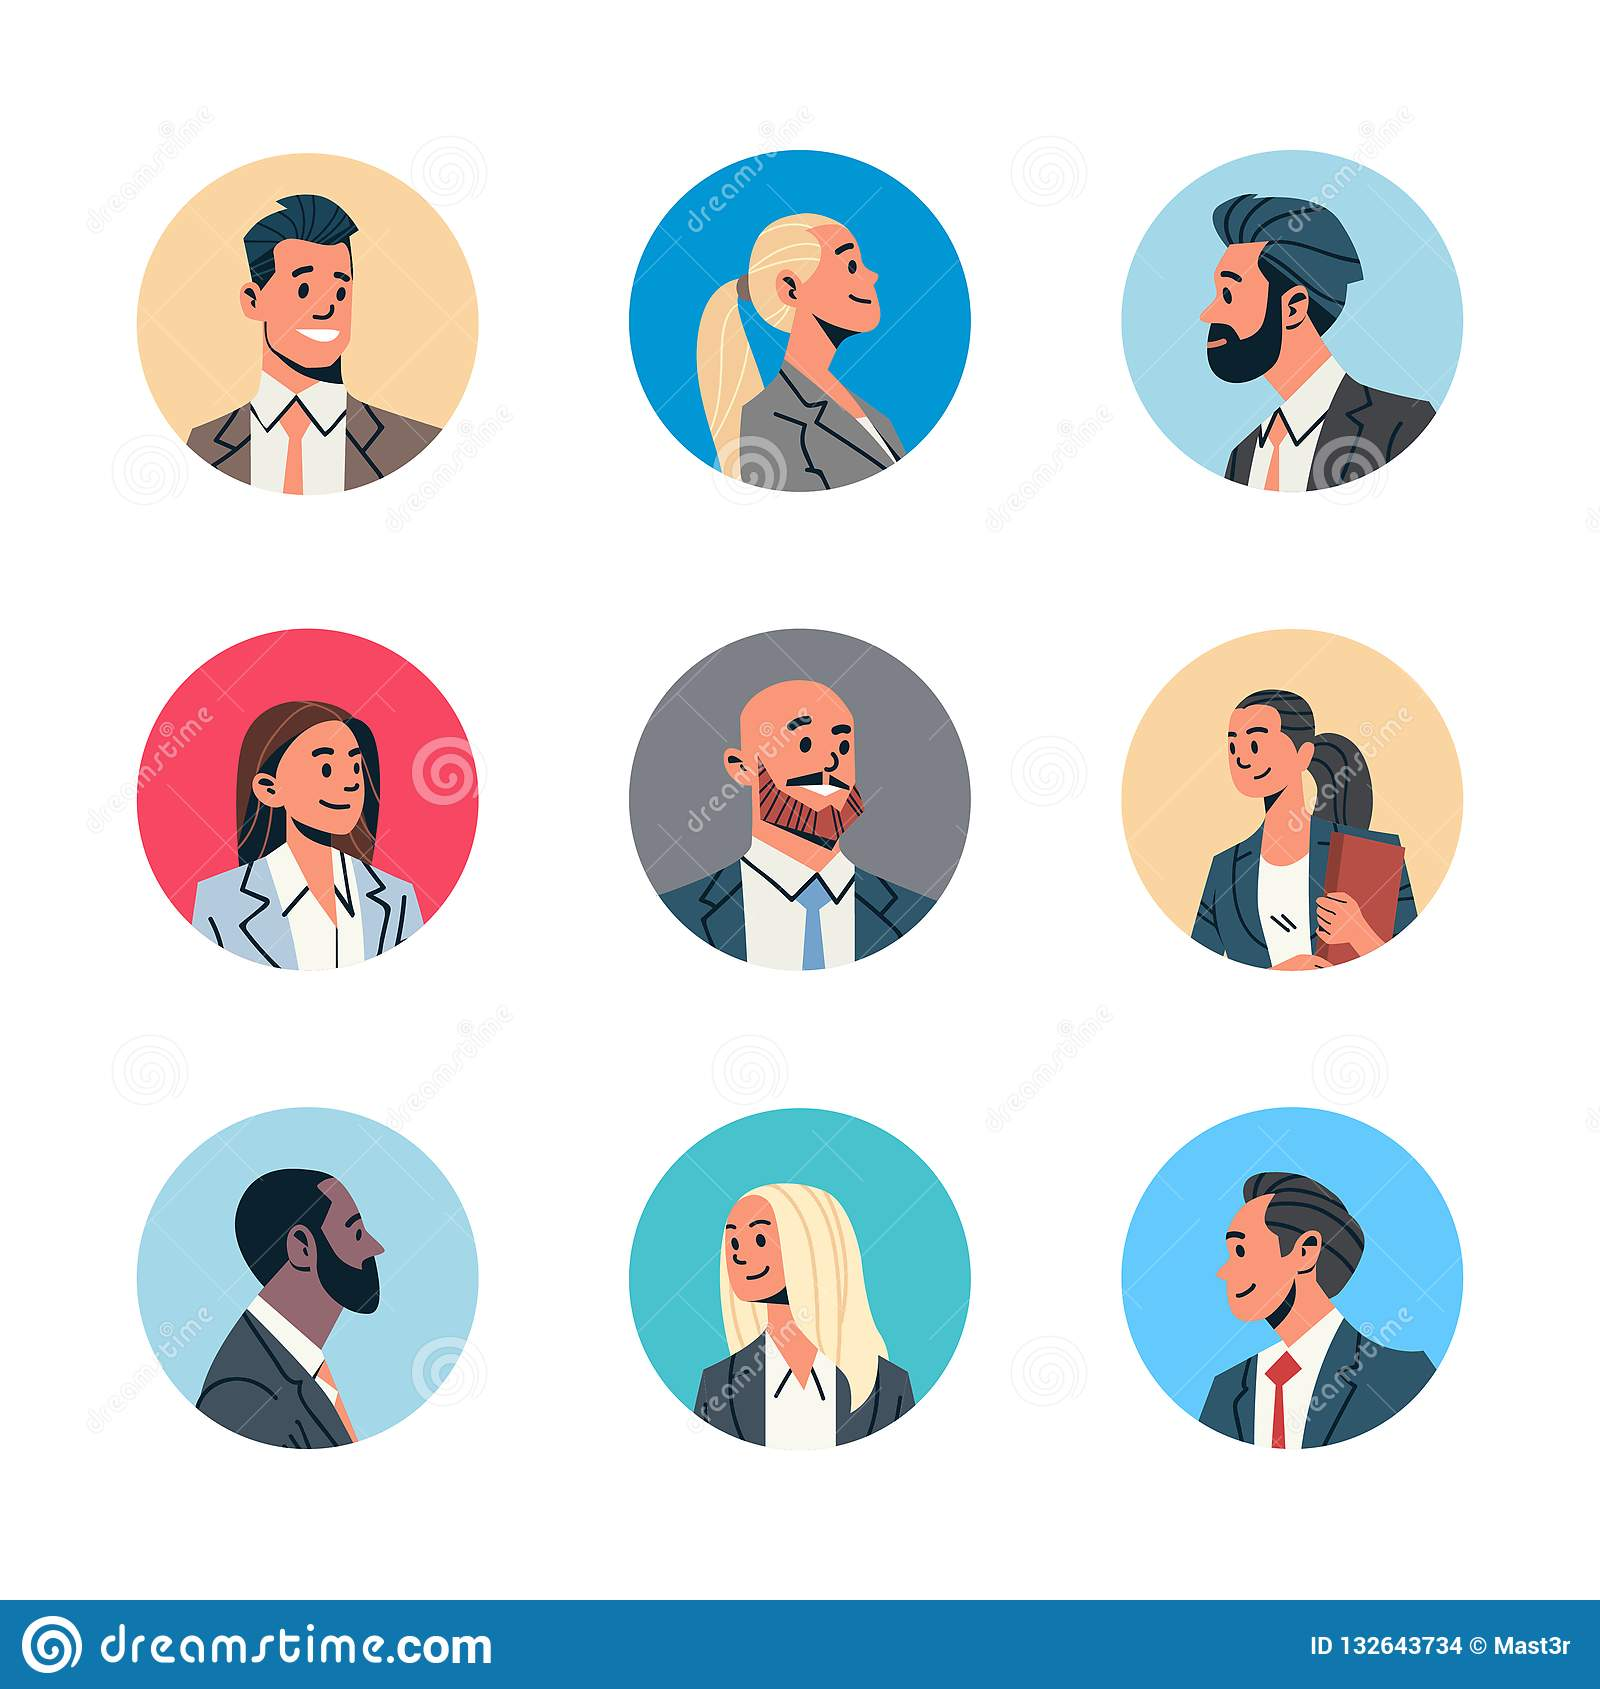 Set different business people avatar man woman face profile icon concept online support service female male cartoon